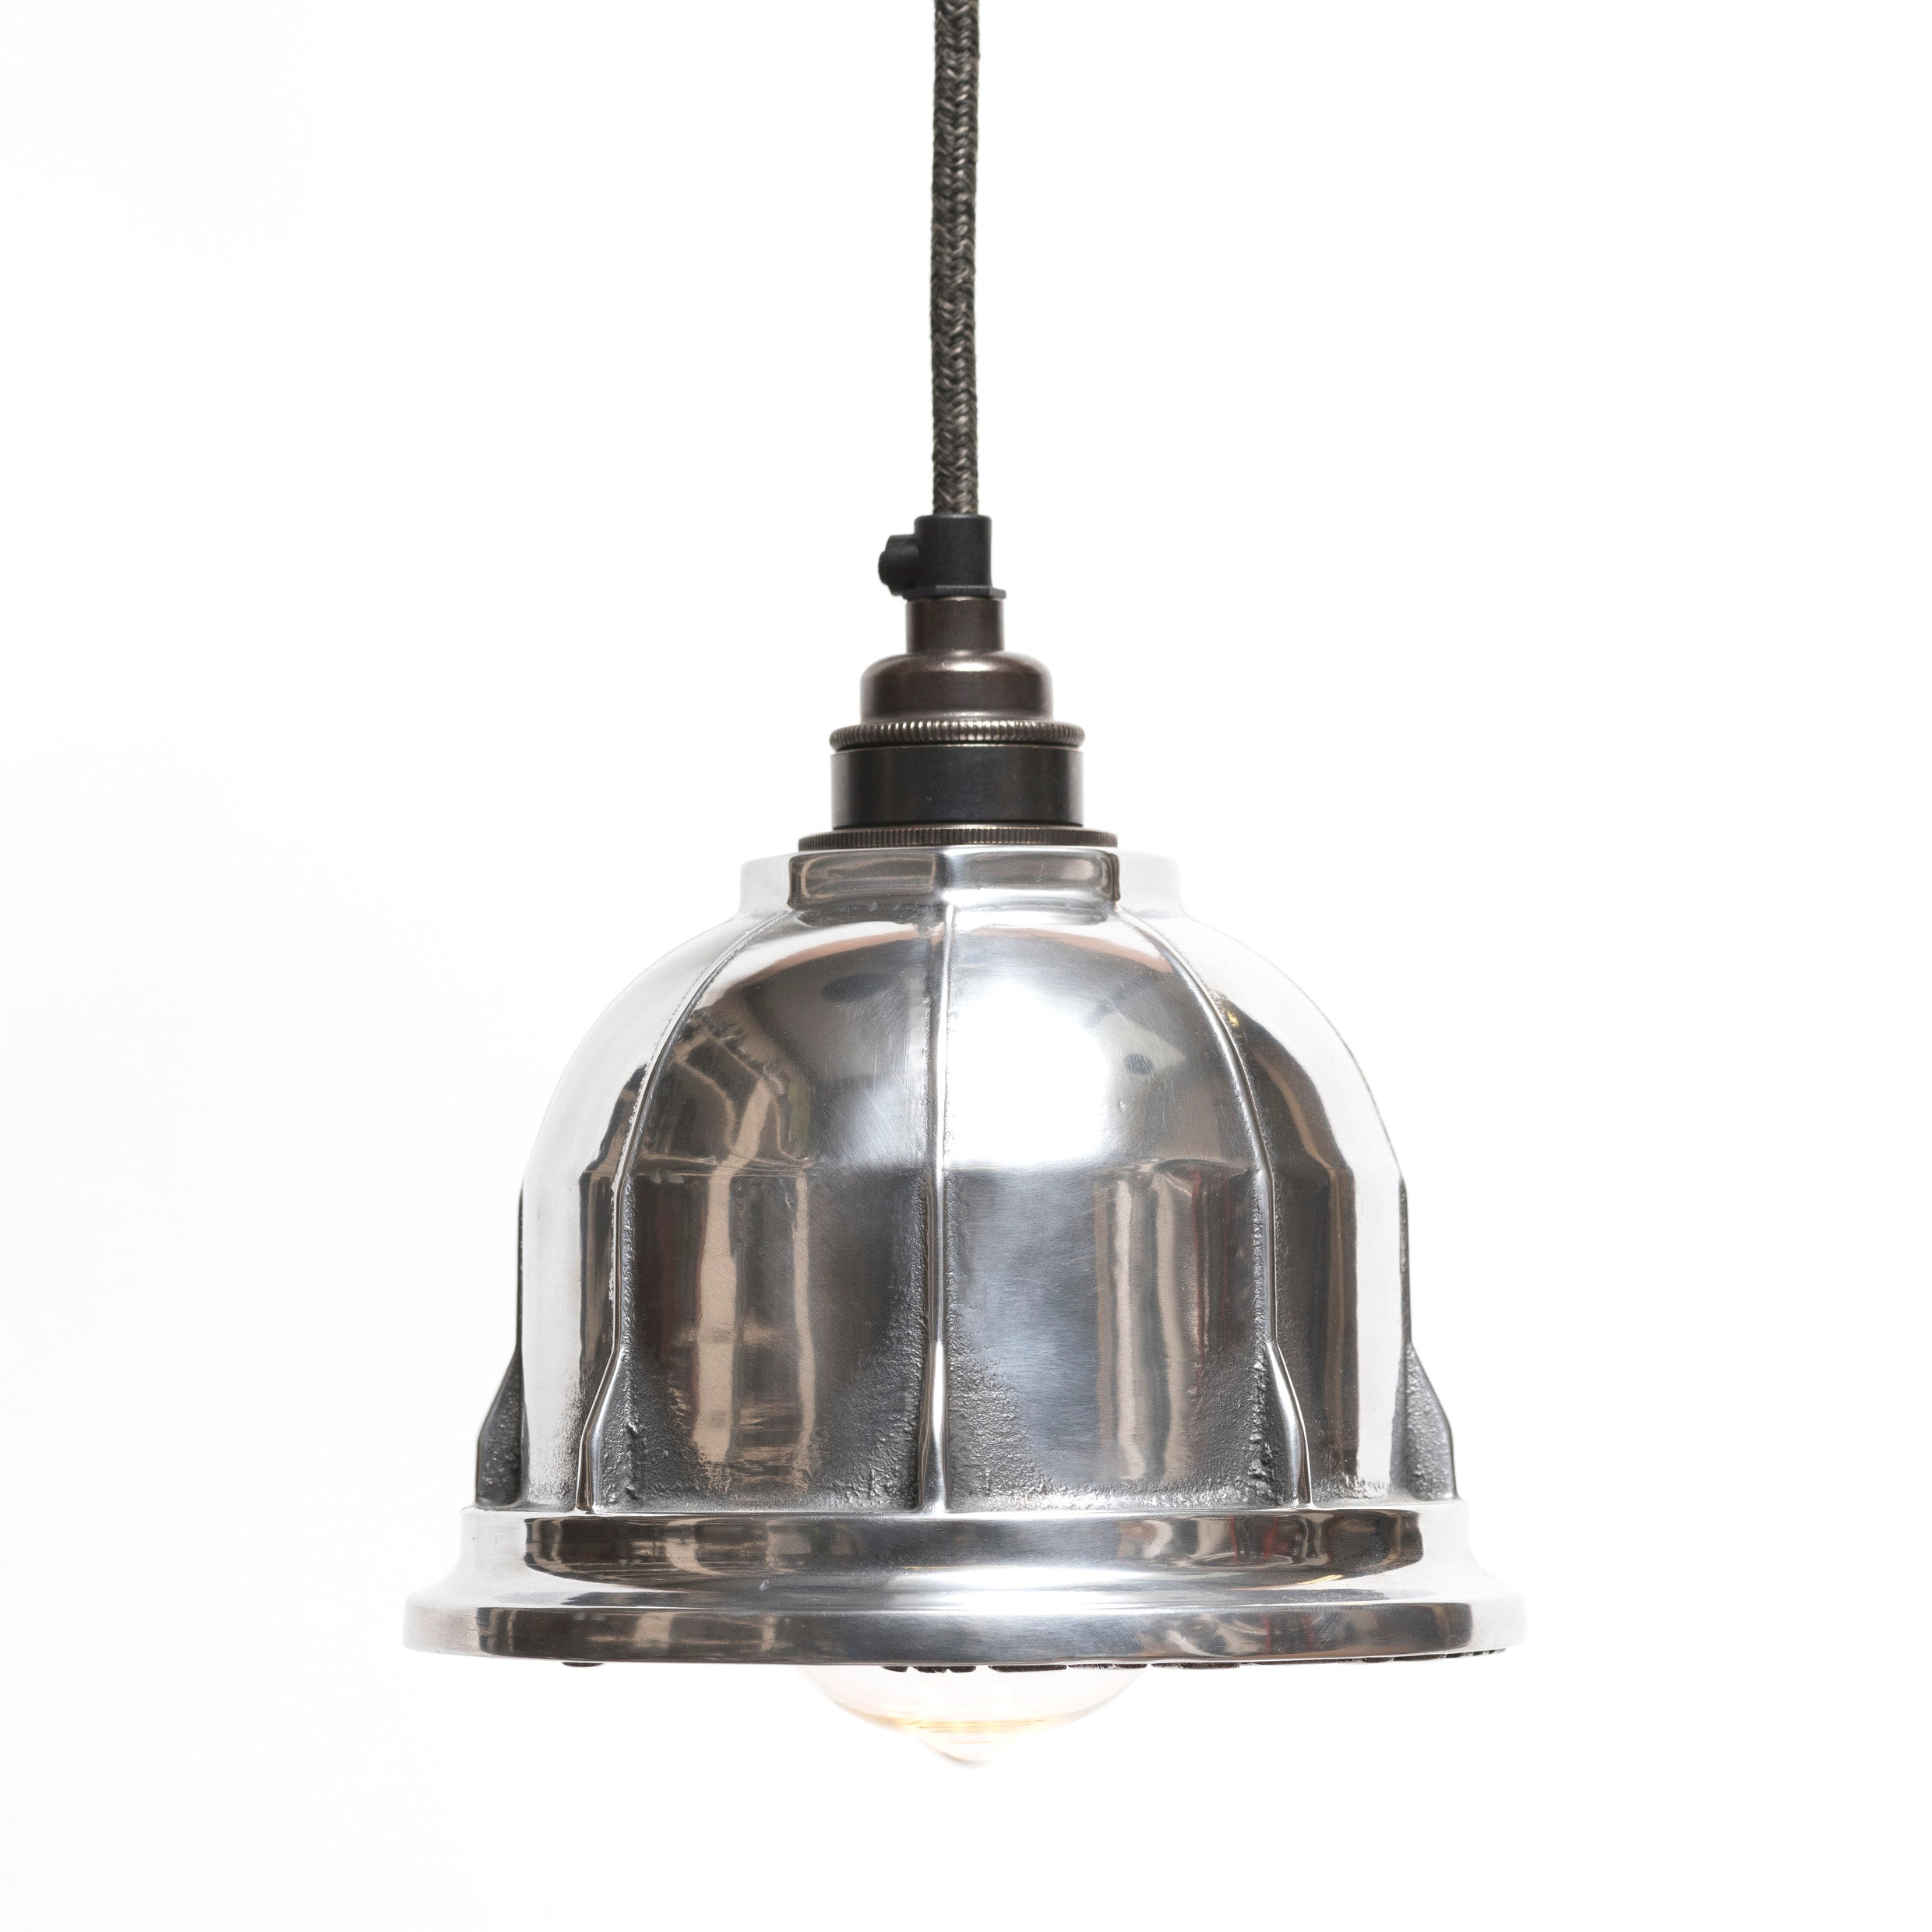 The Rag & Bone Man hand polished Pattern #3 Meter pendant lamp from Warehouse Home